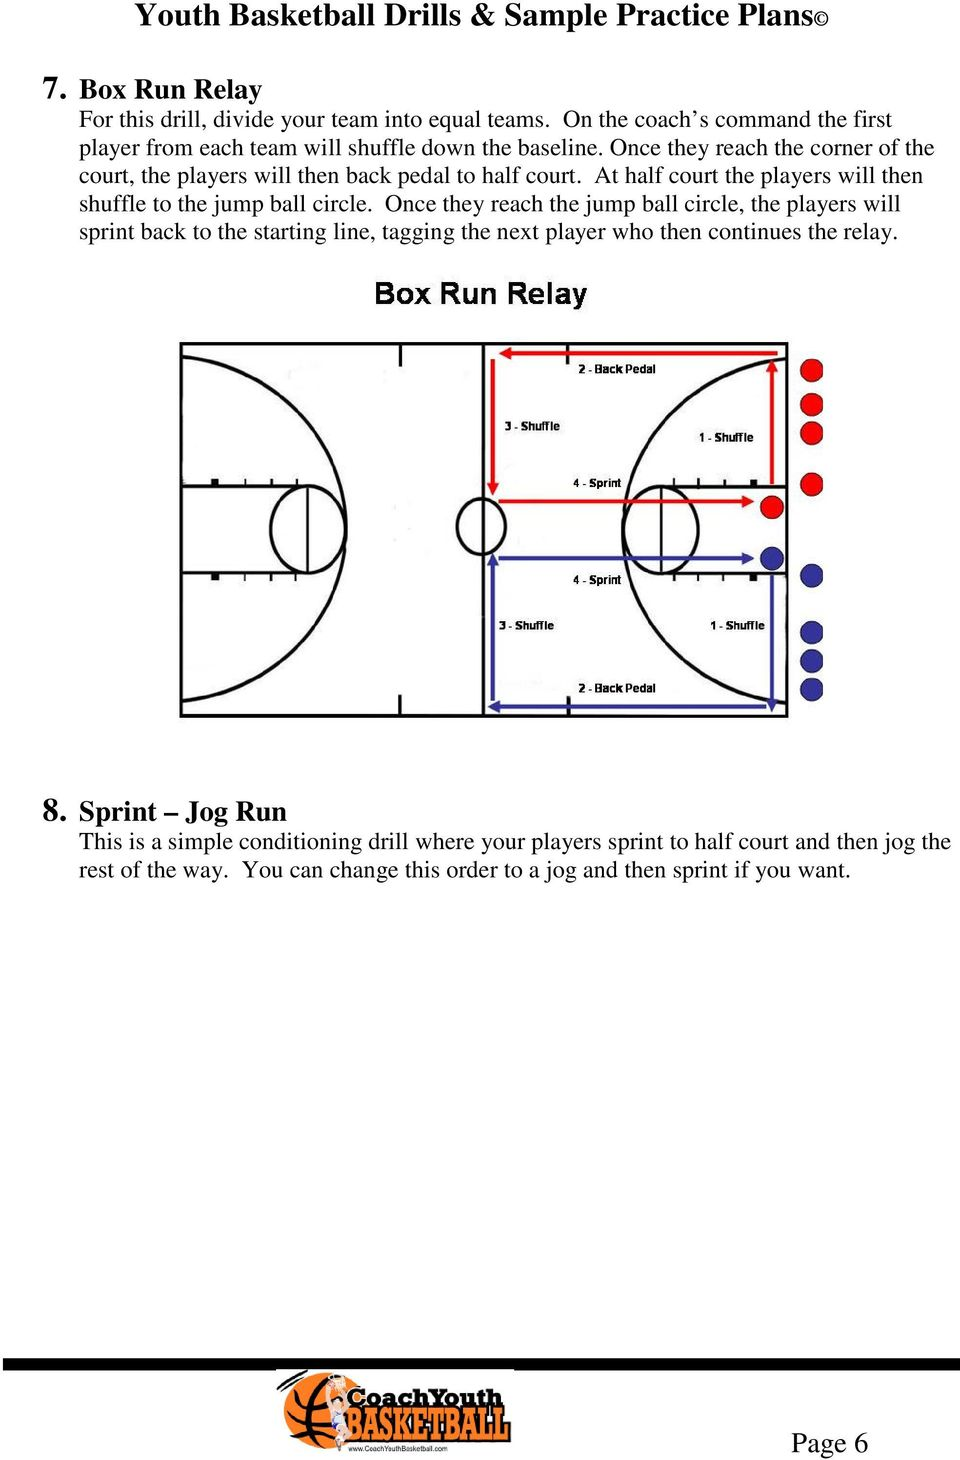 Once they reach the jump ball circle, the players will sprint back to the starting line, tagging the next player who then continues the relay. 8.